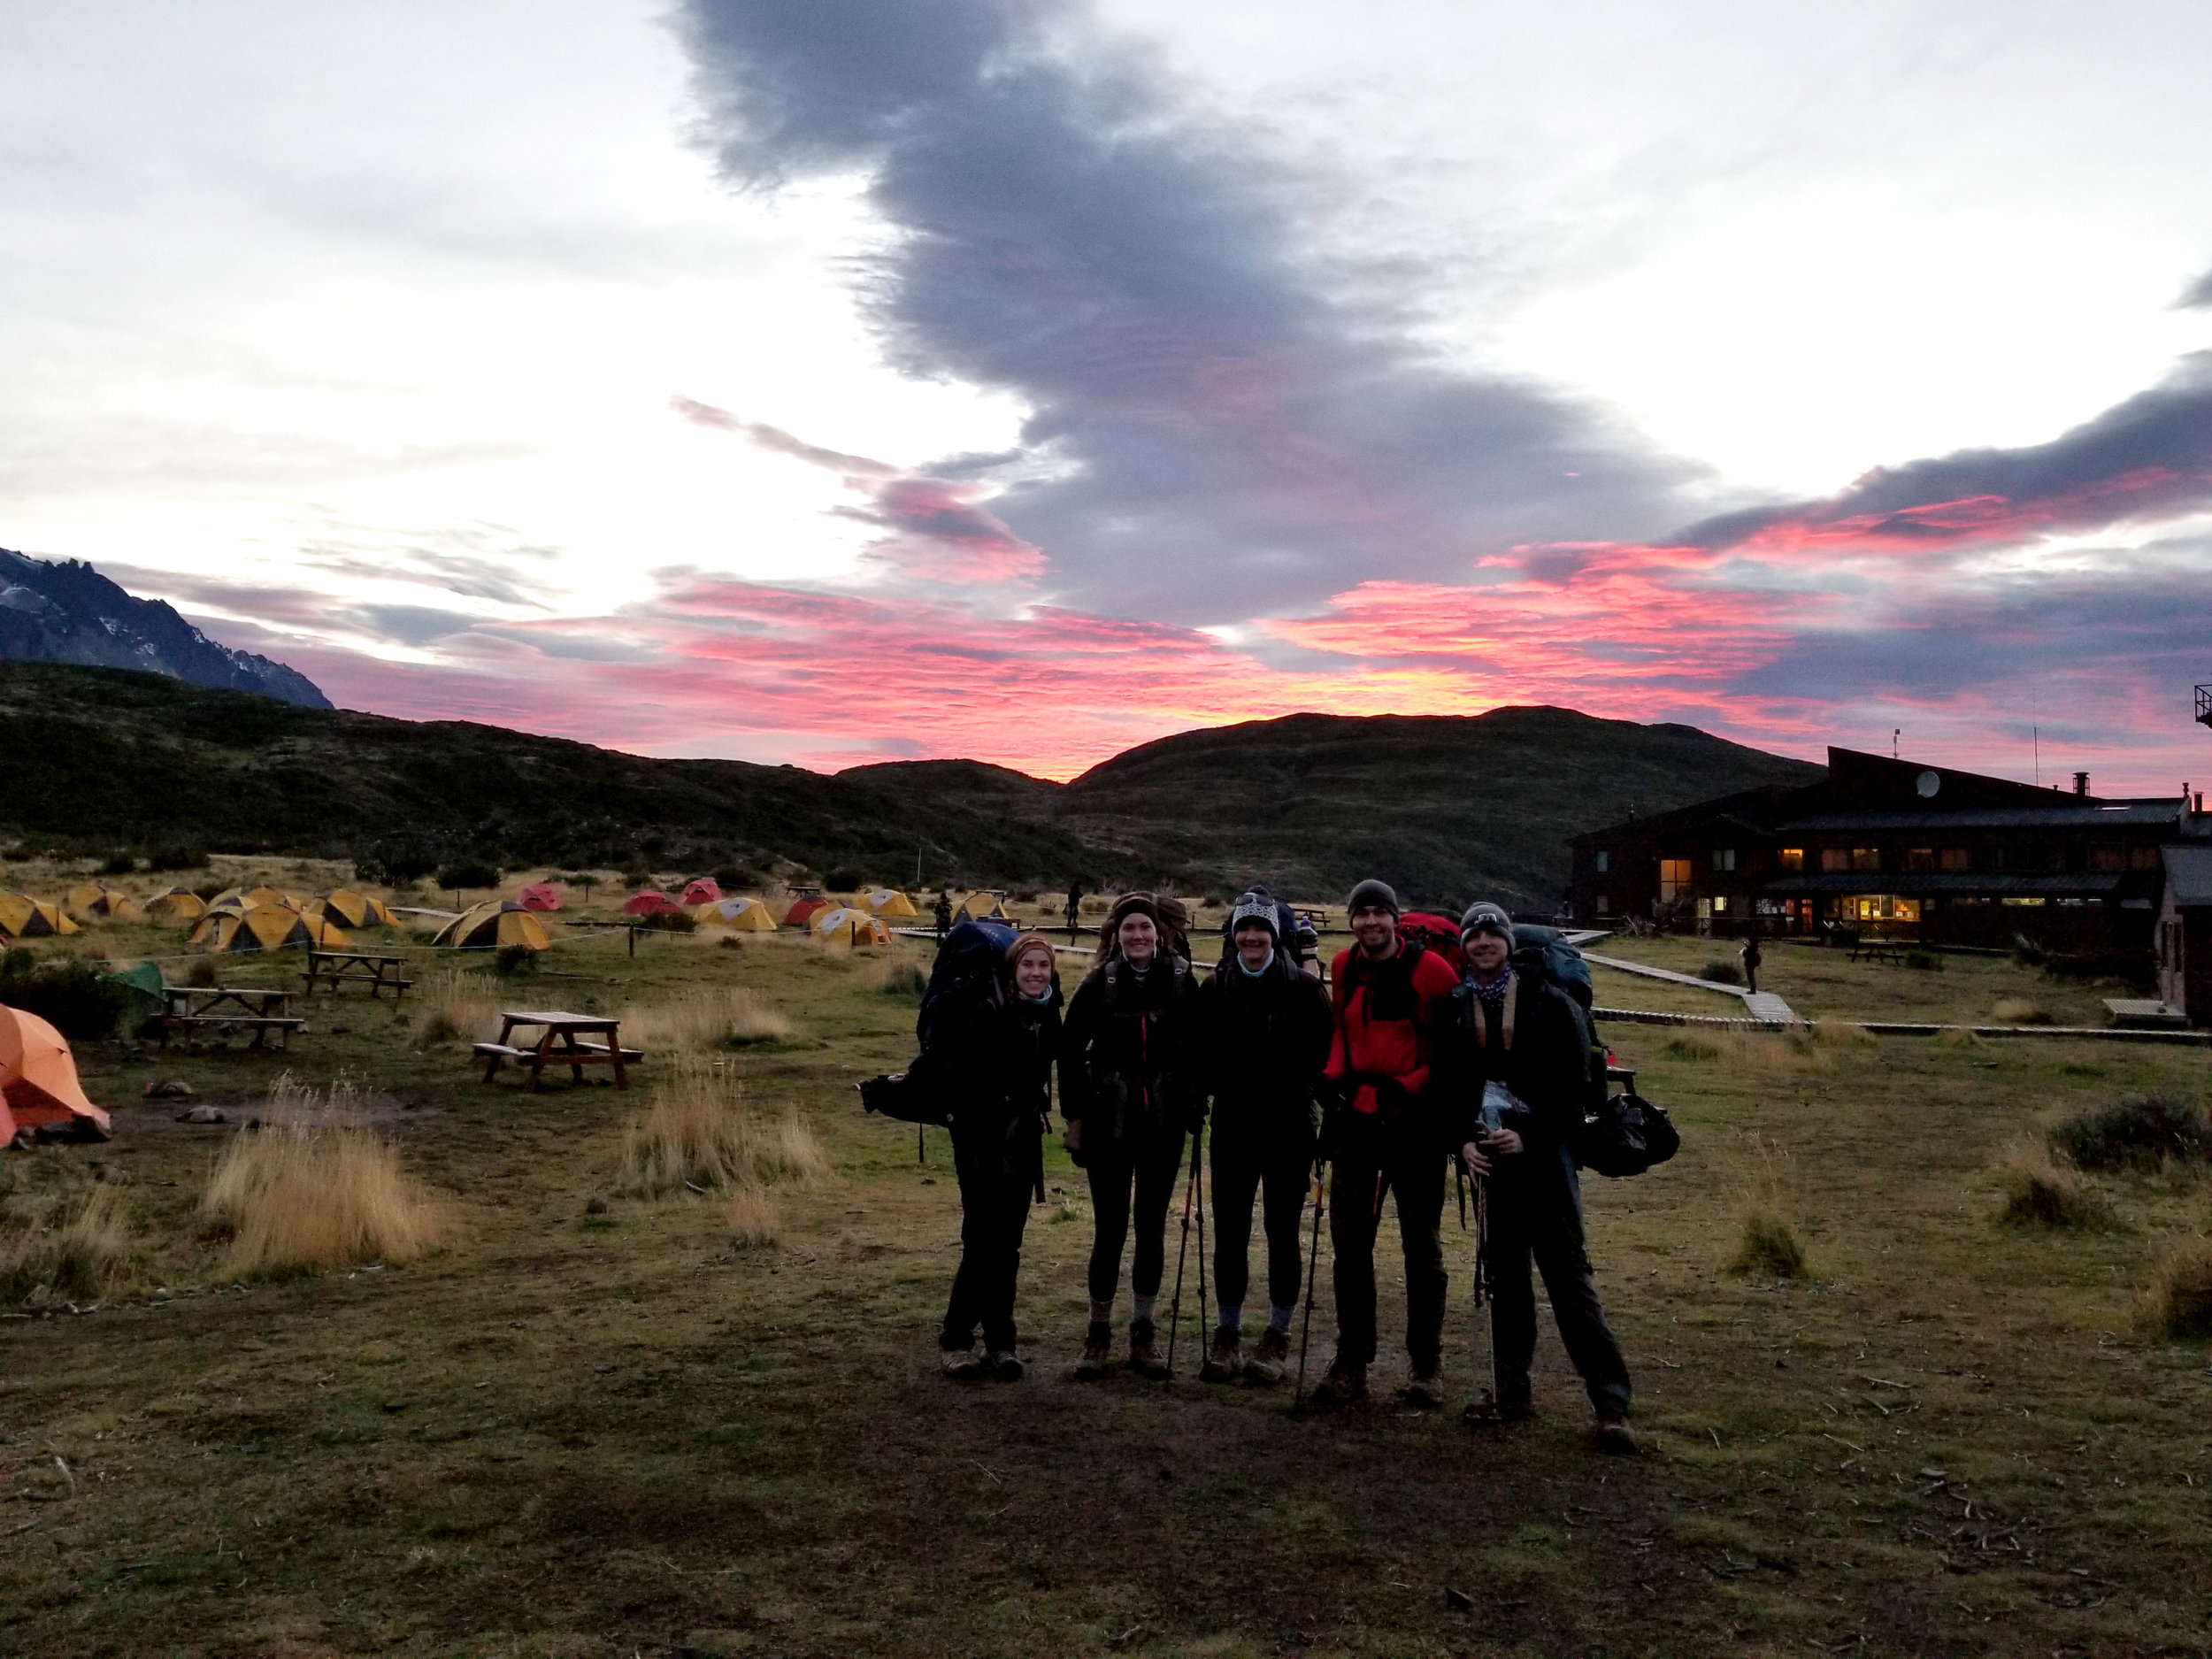 Here we are on day 2 of the W trek -- off to an early start, and catching an incredible sorbet colored sunrise.